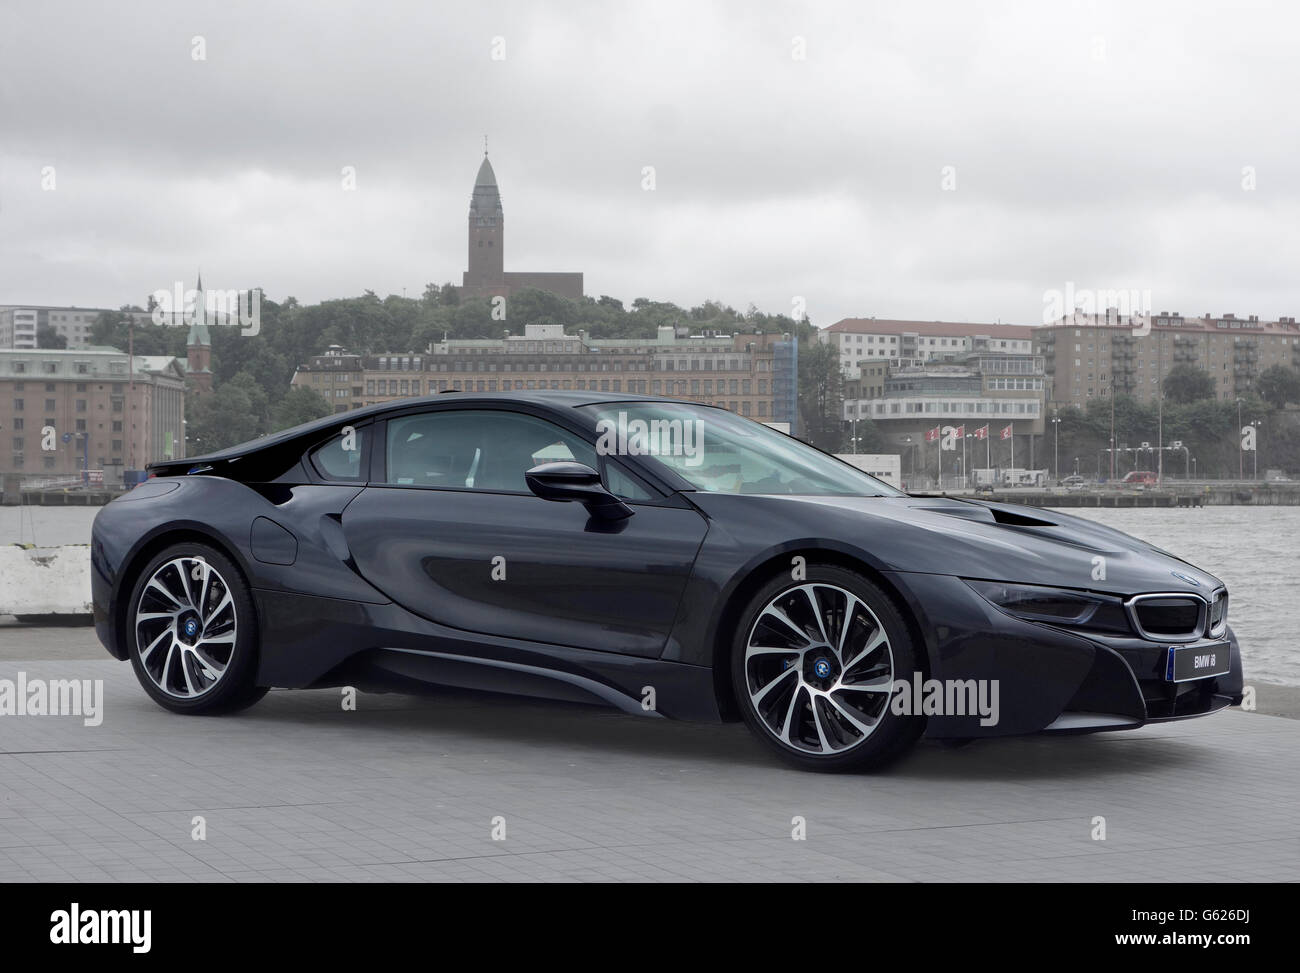 Bmw I8 Sports Car Stock Photos Bmw I8 Sports Car Stock Images Alamy